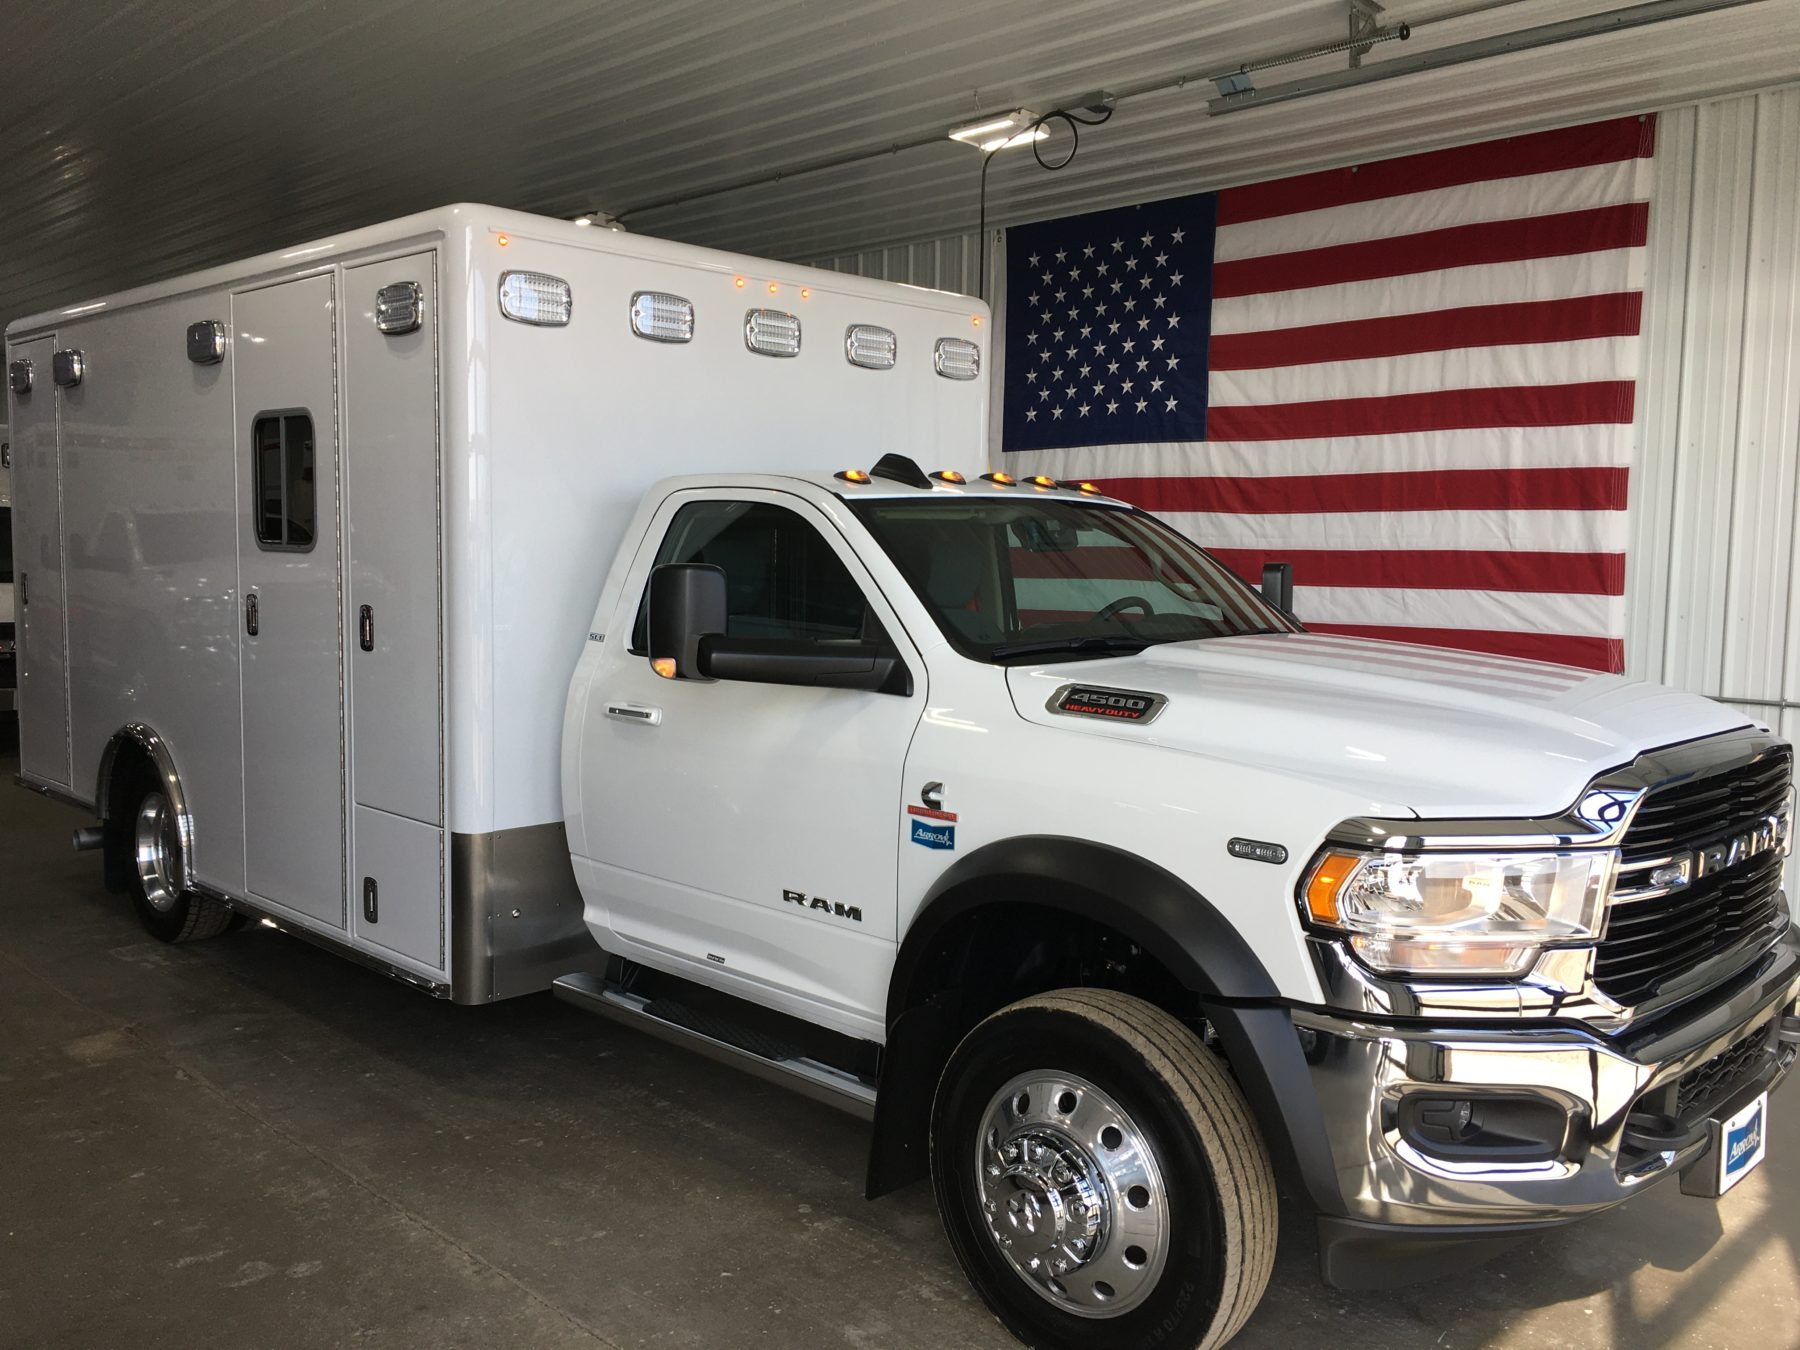 2019 Ram 4500 4x4 Heavy Duty Ambulance For Sale – Picture 1